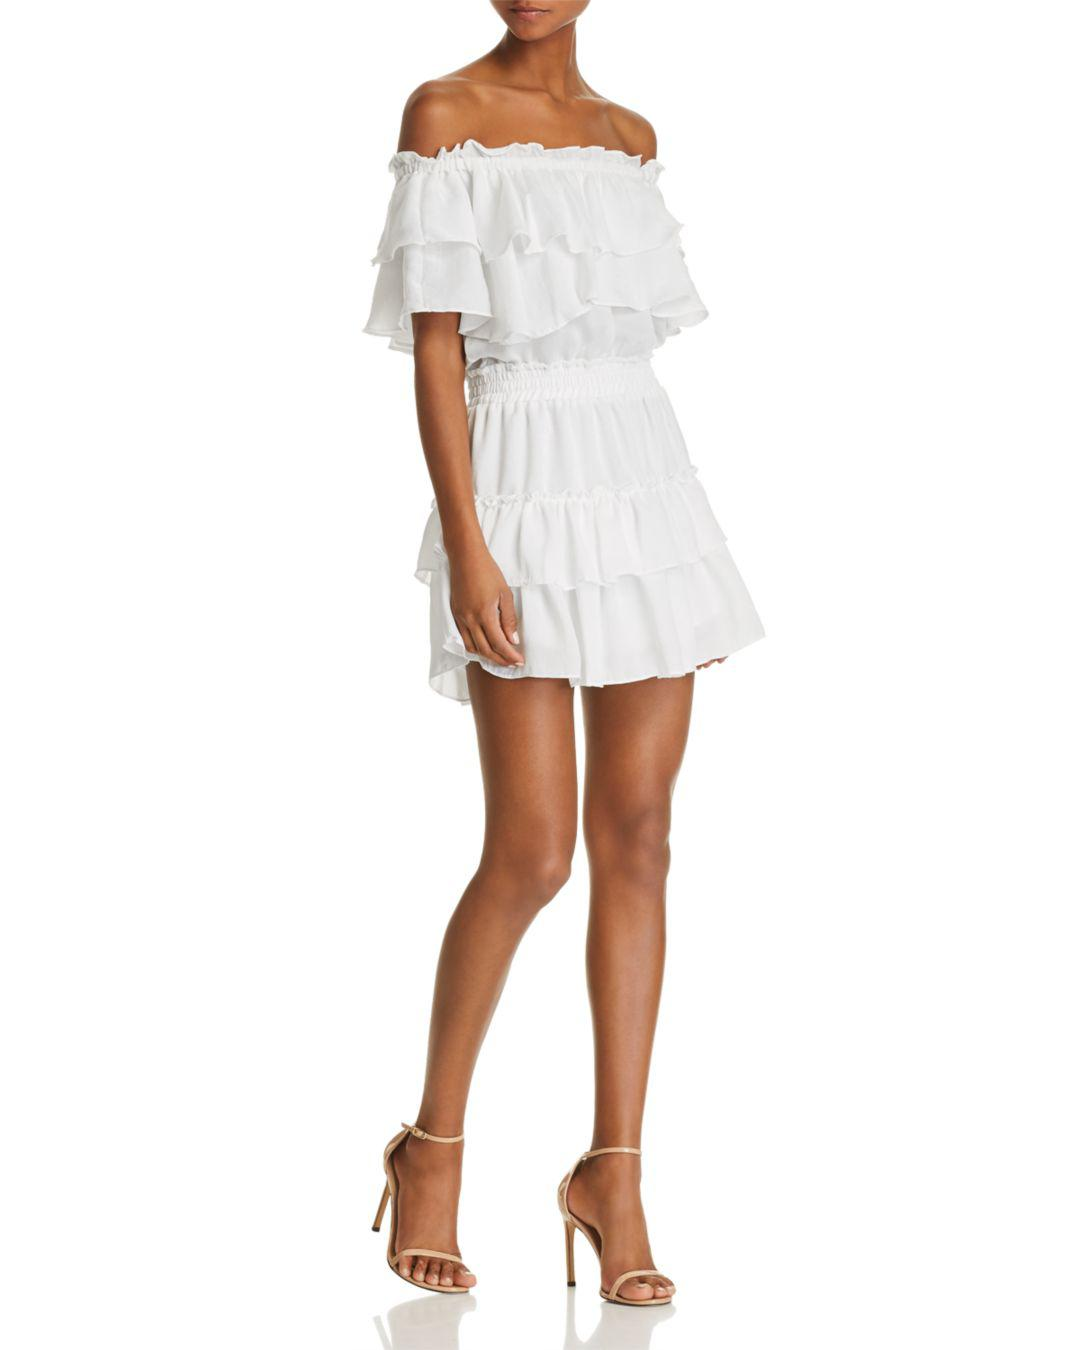 d2bf8cb6c2b6 MISA Giada Off-the-shoulder Tiered Ruffle Dress in White - Lyst